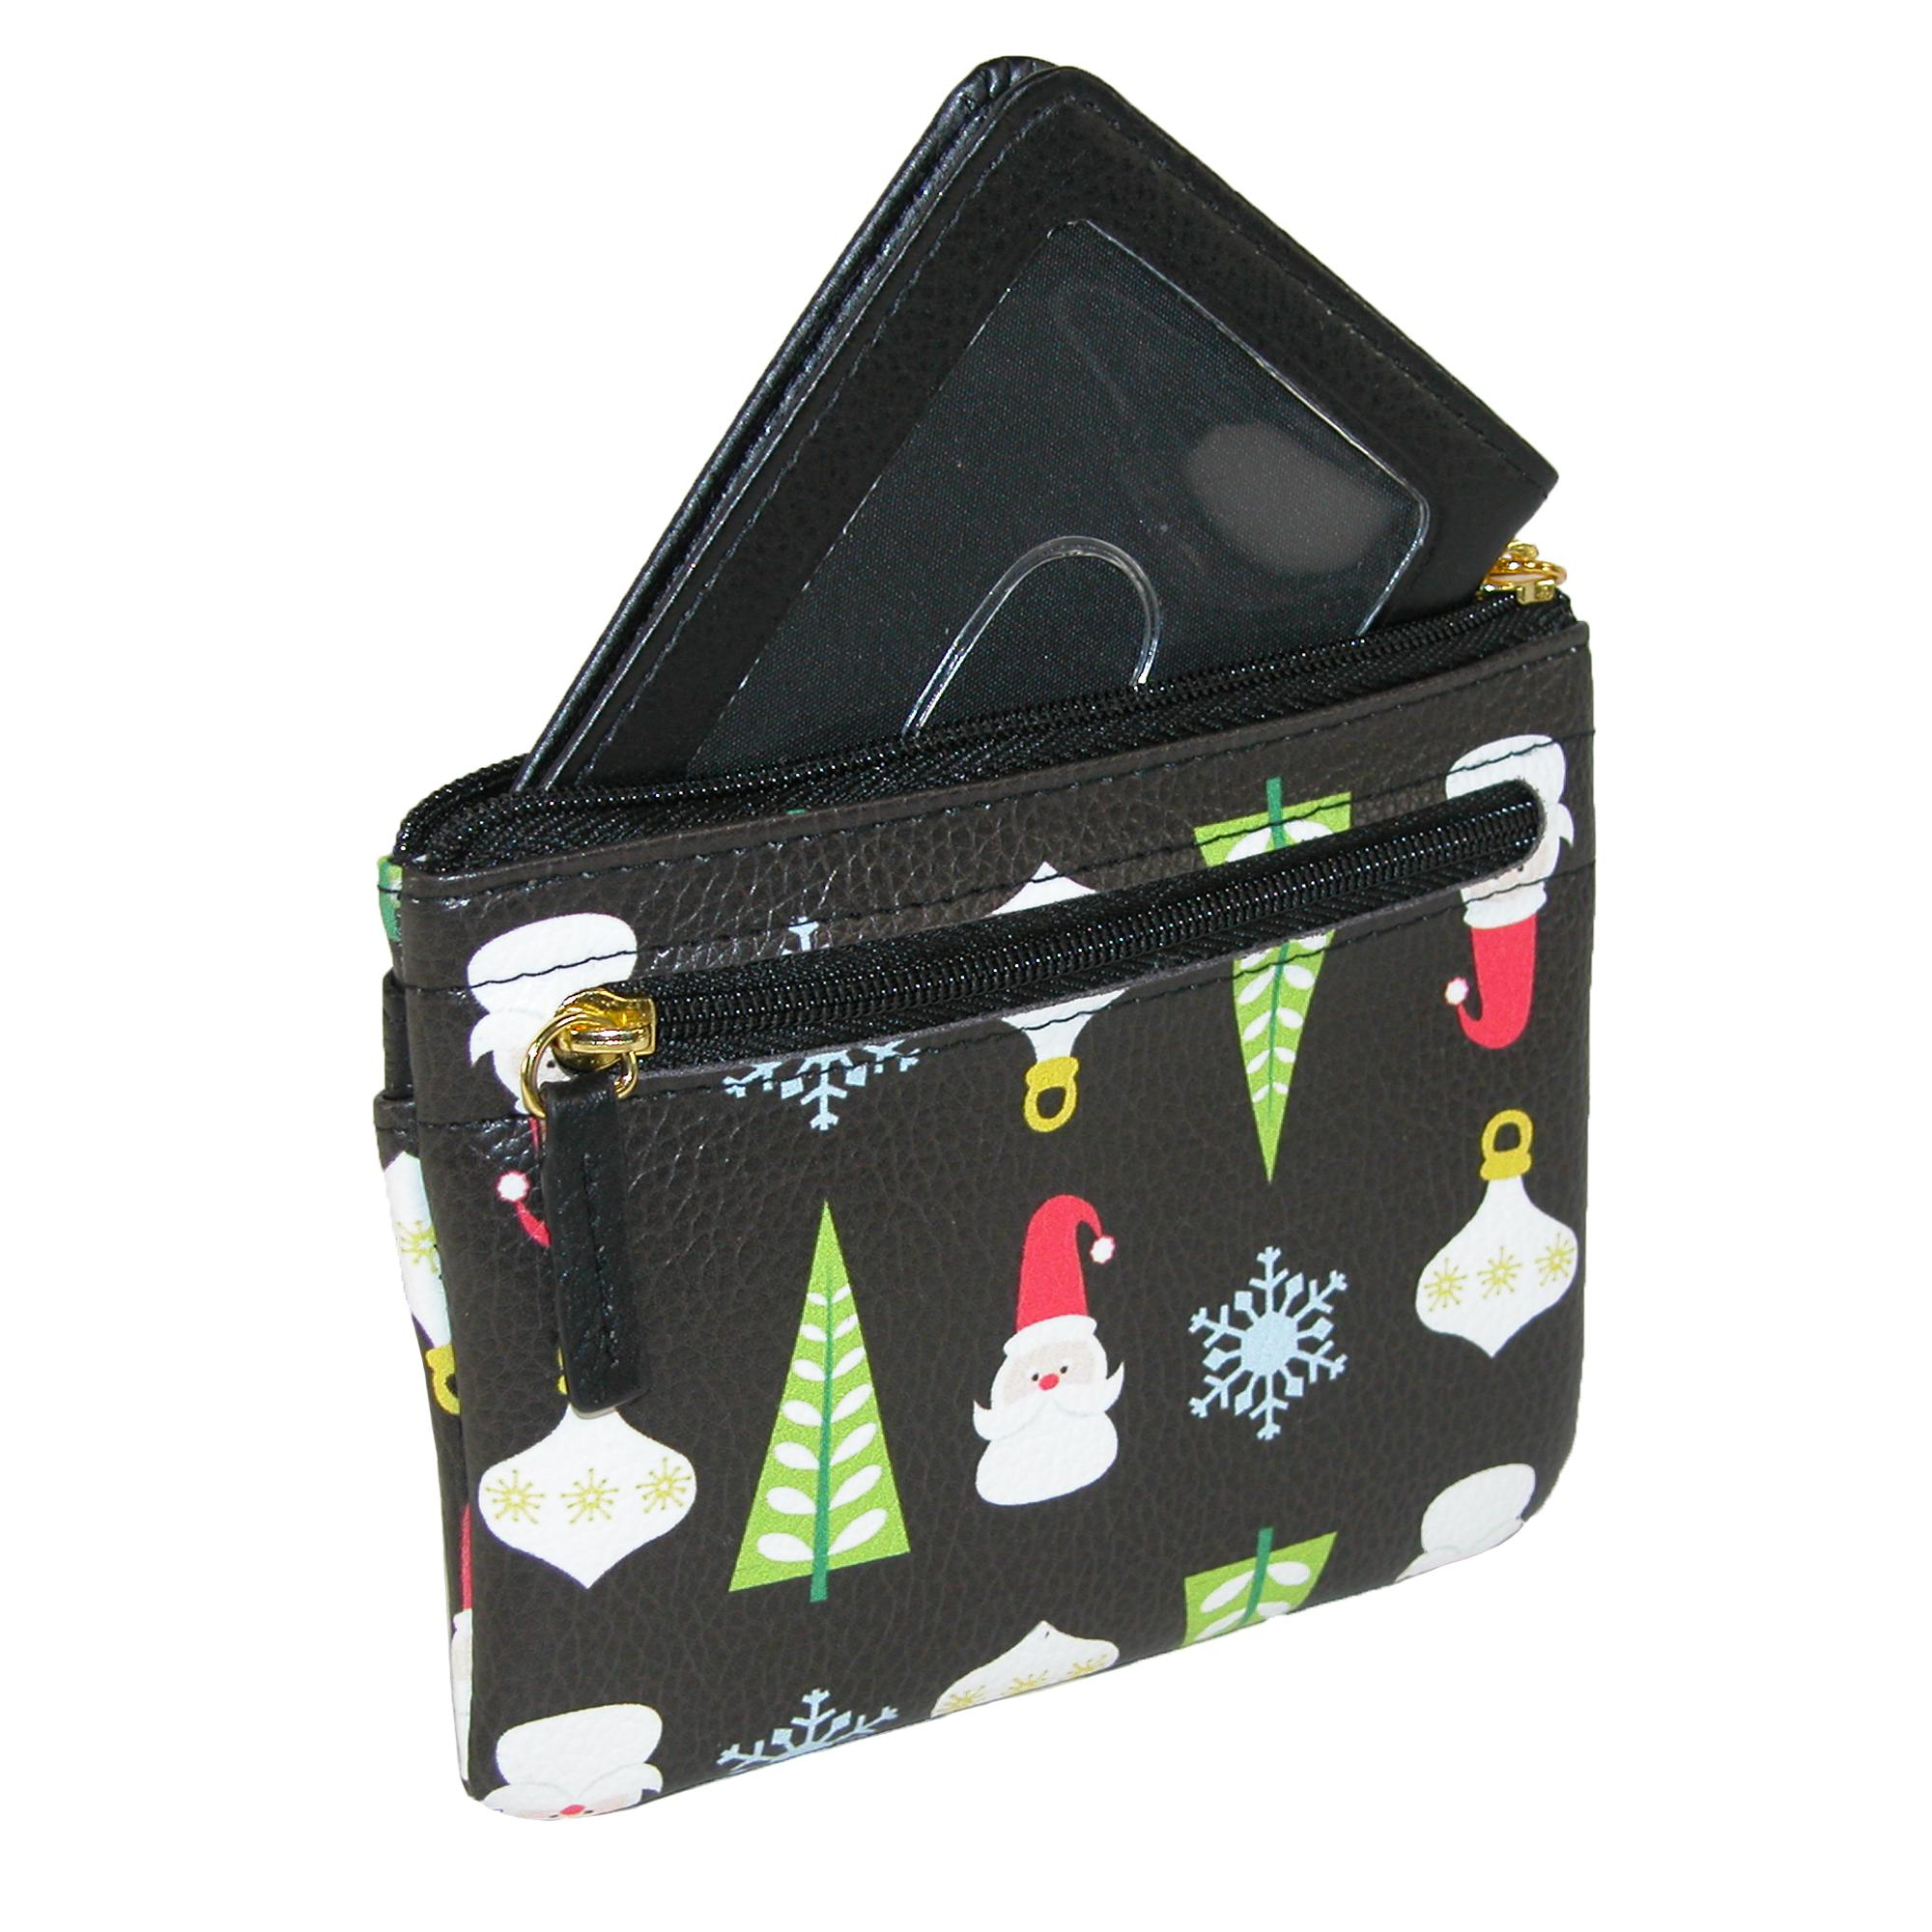 New Buxton Women\'s Holiday Christmas Coin and Card Case Wallet | eBay